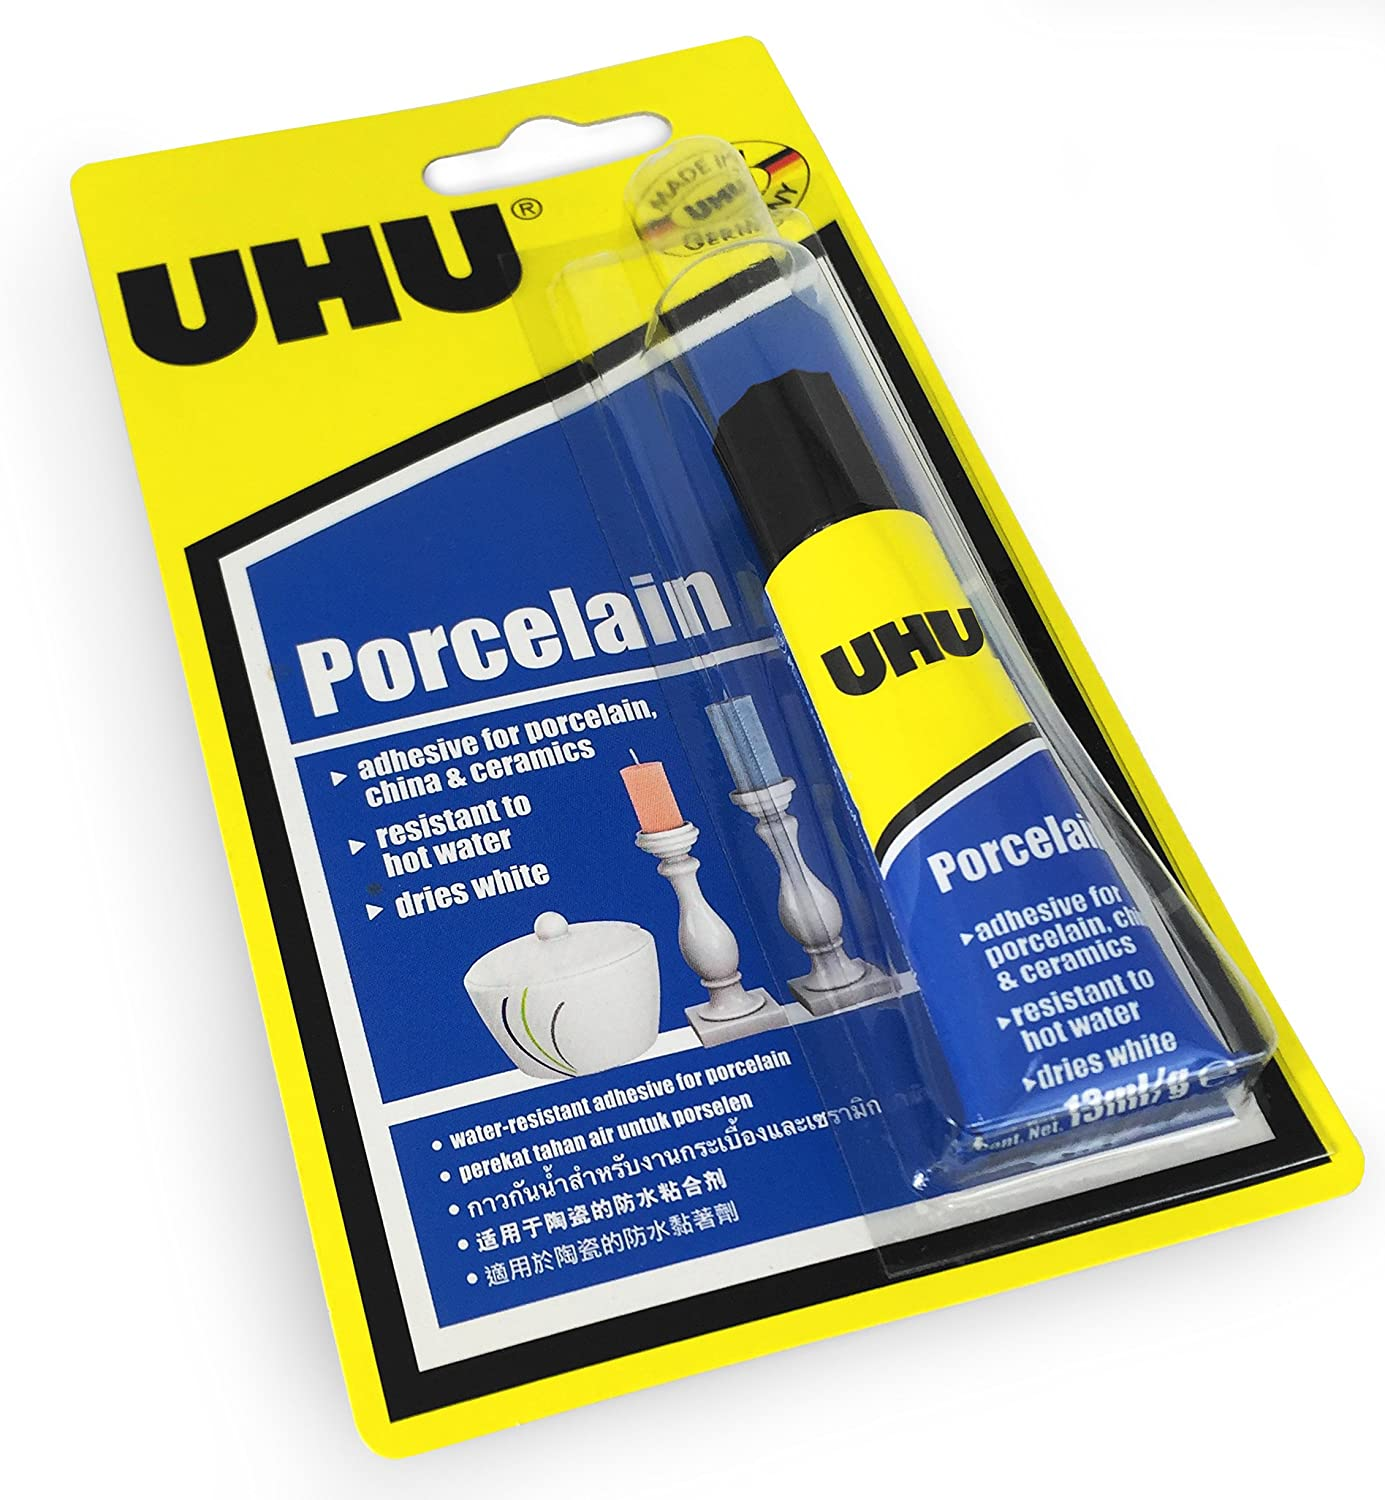 UHU Porcelain Adhesive – Dries White - Water Resistant – 4ml